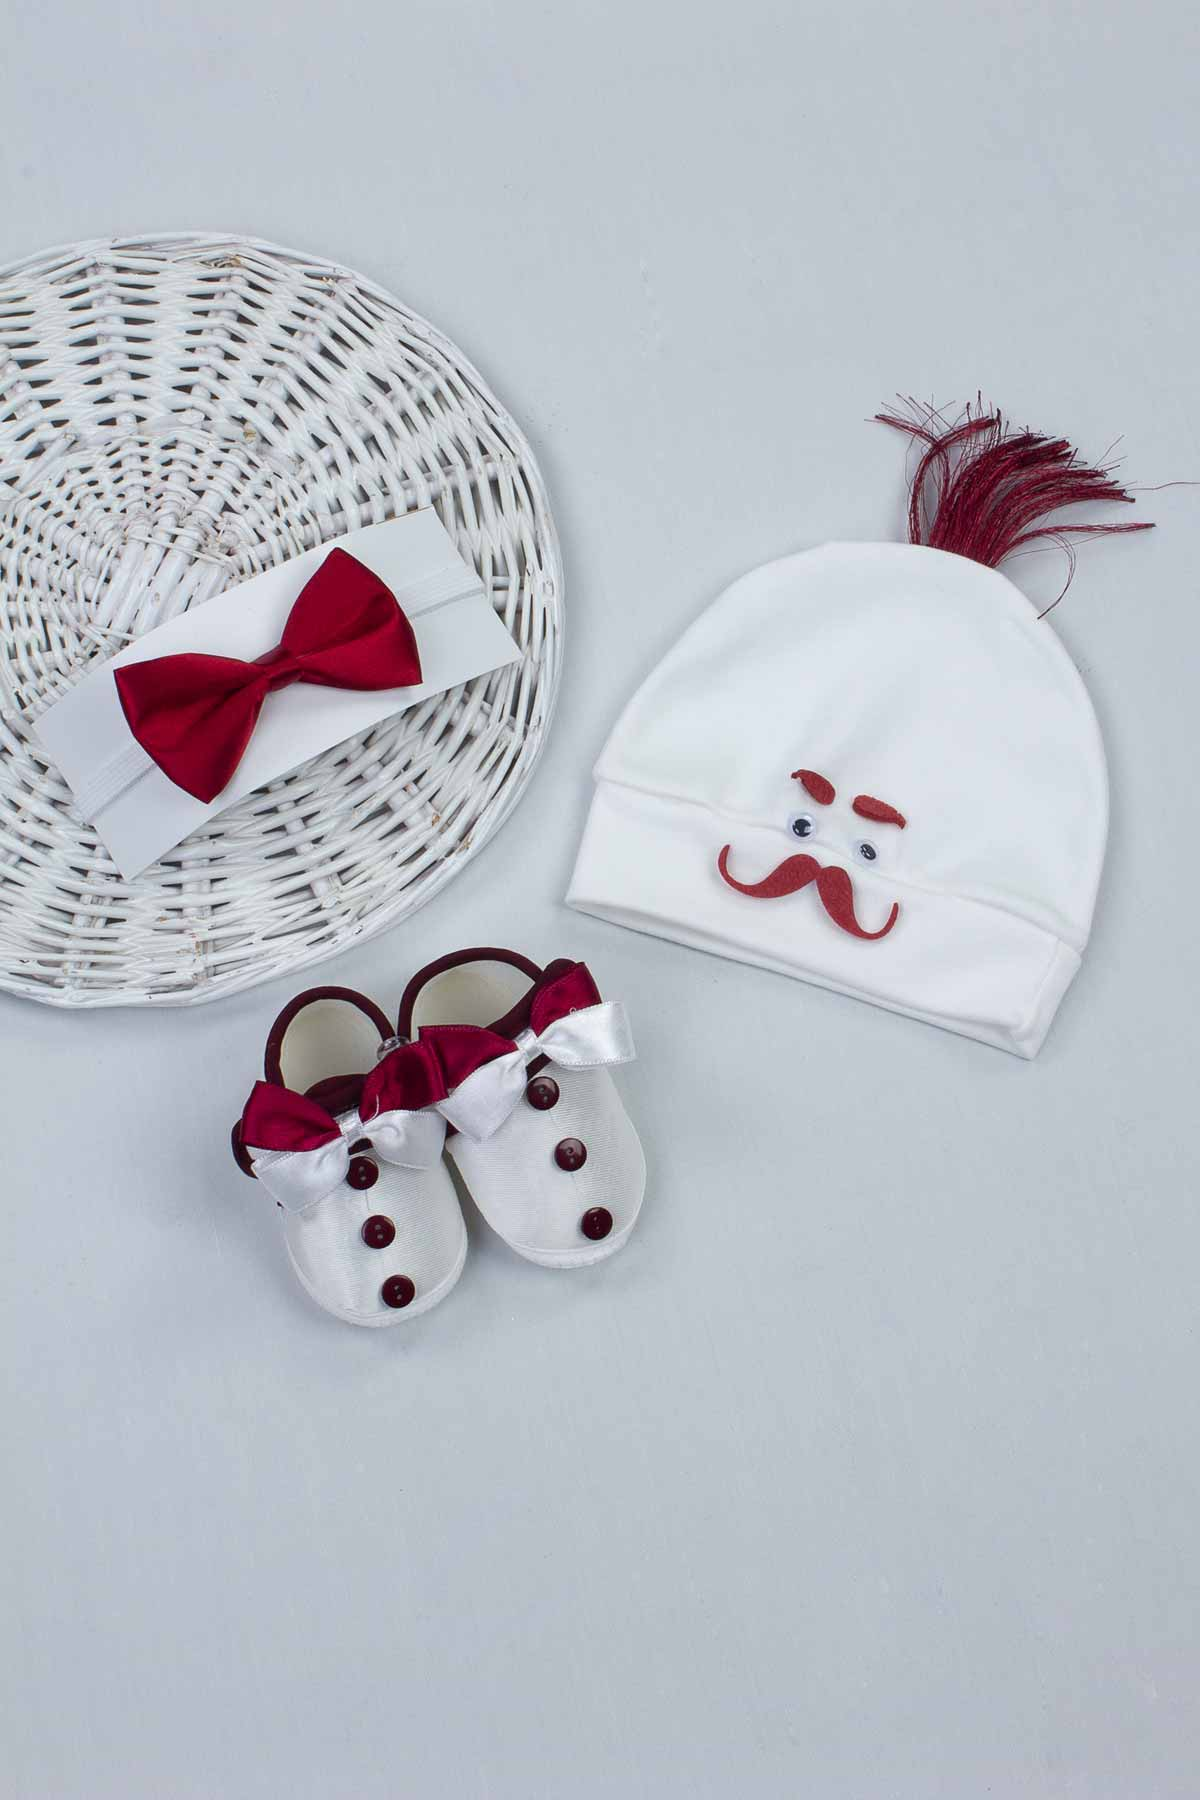 Baby Girl Boy Mommy Special Day Newborn Infants Clothing Prince Princess Gift Set Birthday Outfit Shoes Crown Bowtie Slippers